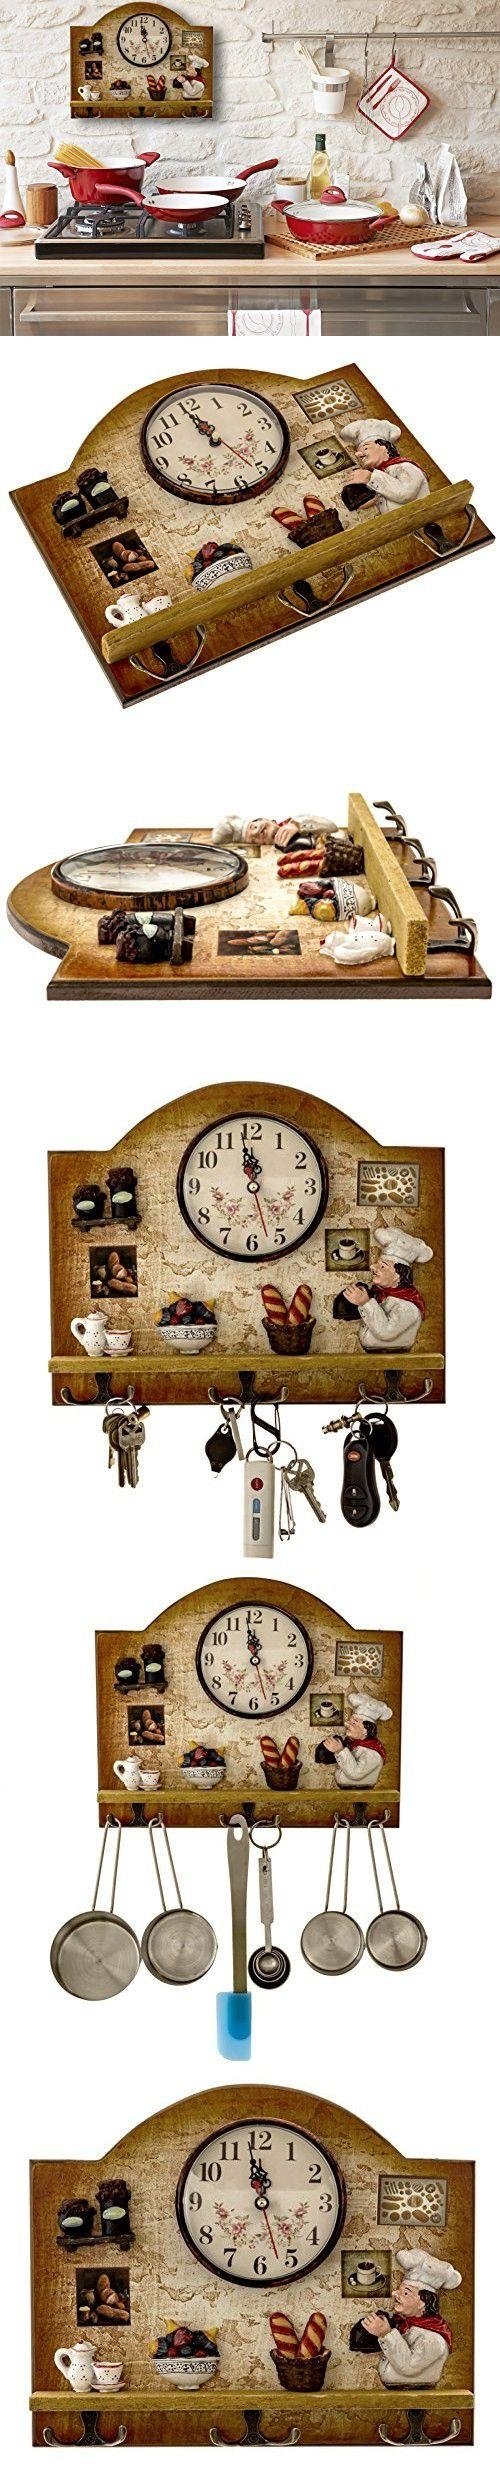 Best 25+ Italian Kitchen Decor Ideas On Pinterest   Apothecary Intended For Italian Ceramic Wall Clock Decors (Image 9 of 20)